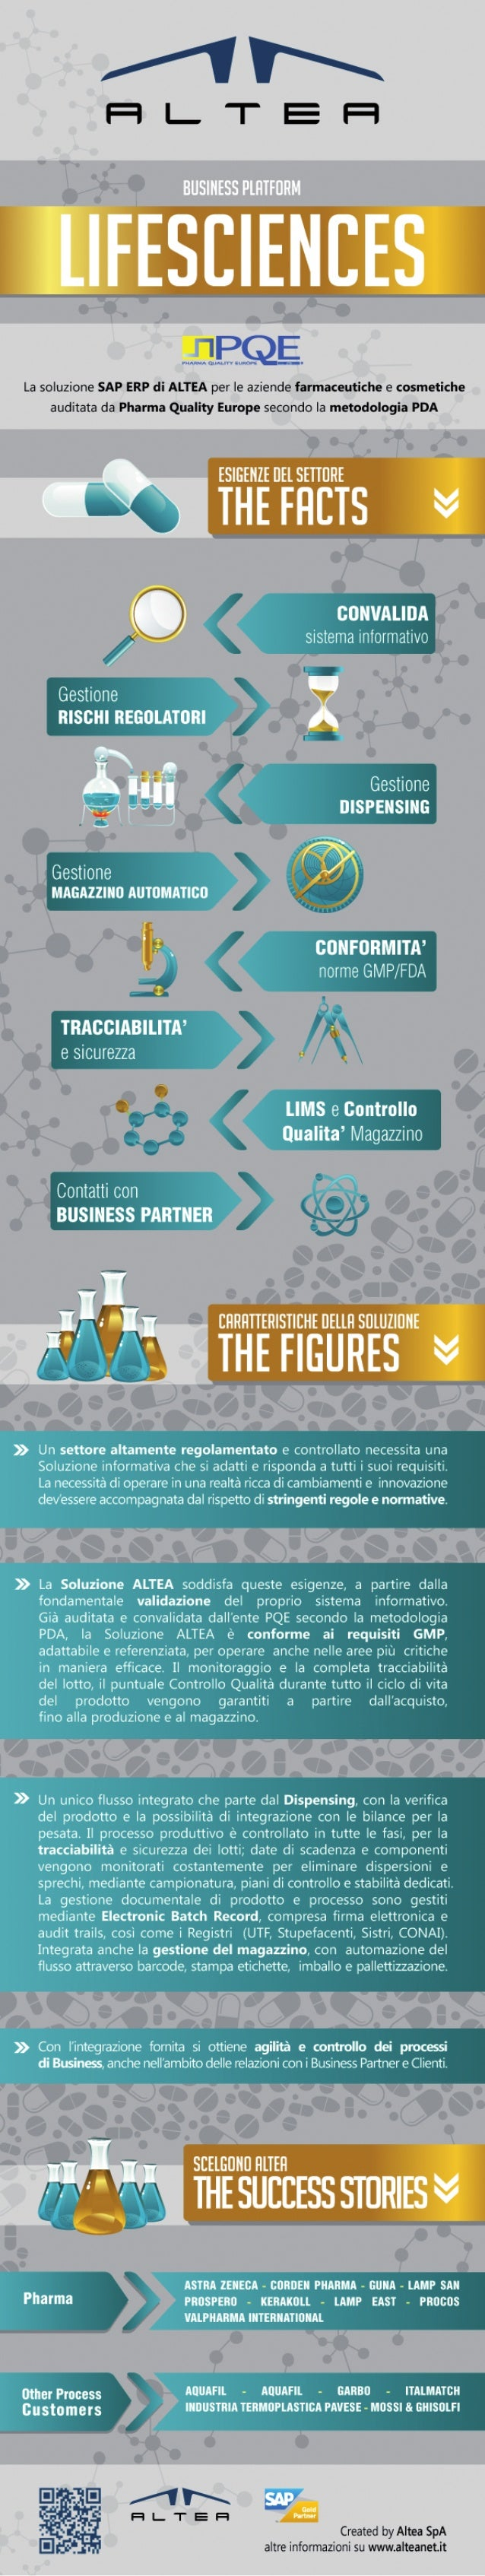 ALTEA SAP Business Platform LifeSciences